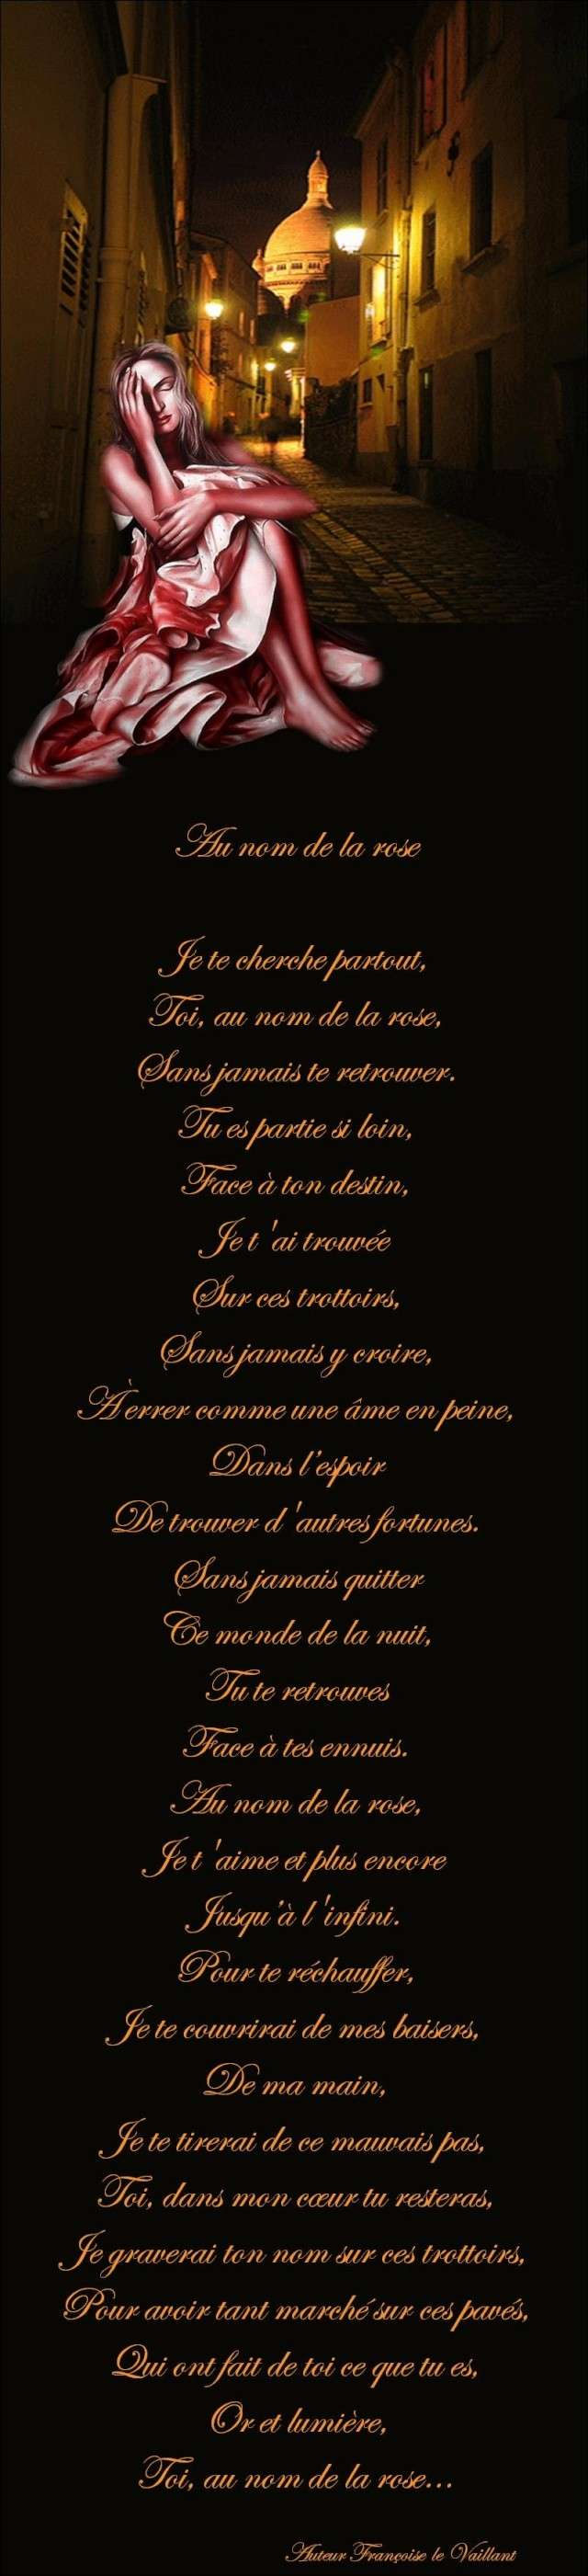 Poeme D Amour Page 4